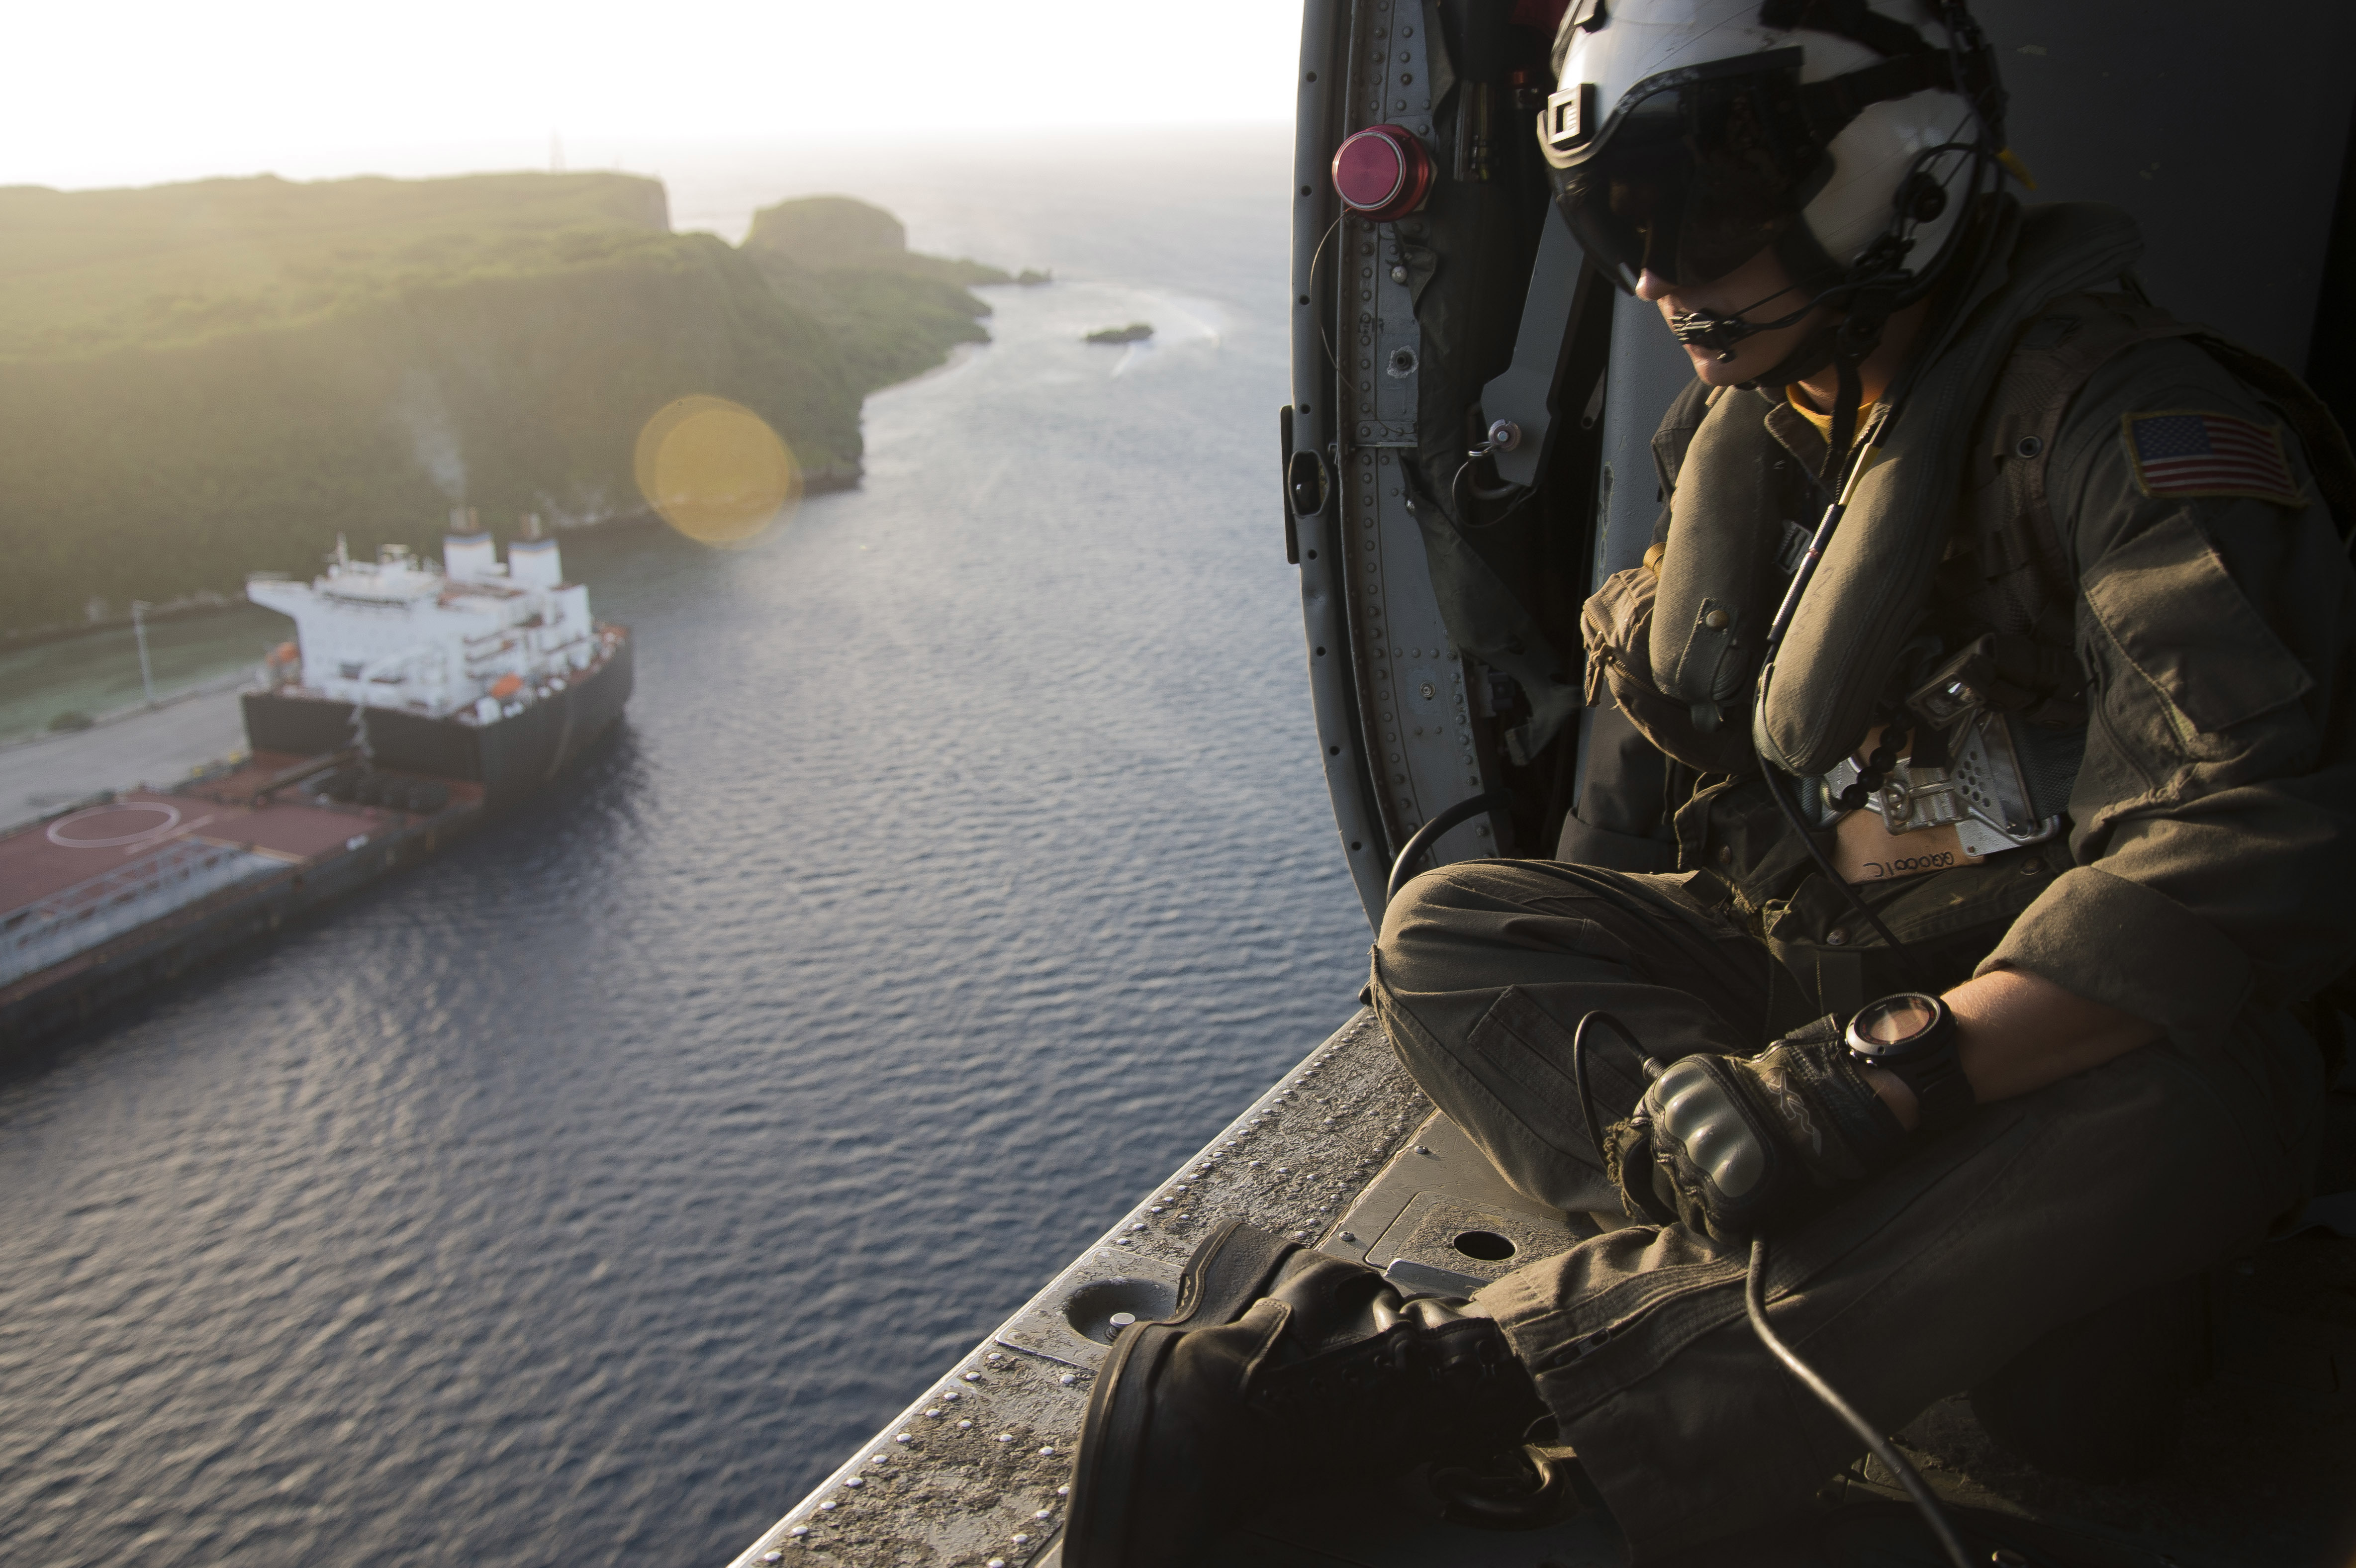 U.S. Navy Naval Aircrewman (Helicopter) 1st Class John McCracken, assigned to Helicopter Sea Combat Squadron (HSC) 25, assists on overwatch during a Maritime Close Air Support Scenario with U.S. Marines in Guam. (Chief Mass Communication Specialist Joan E. Jennings/Navy)